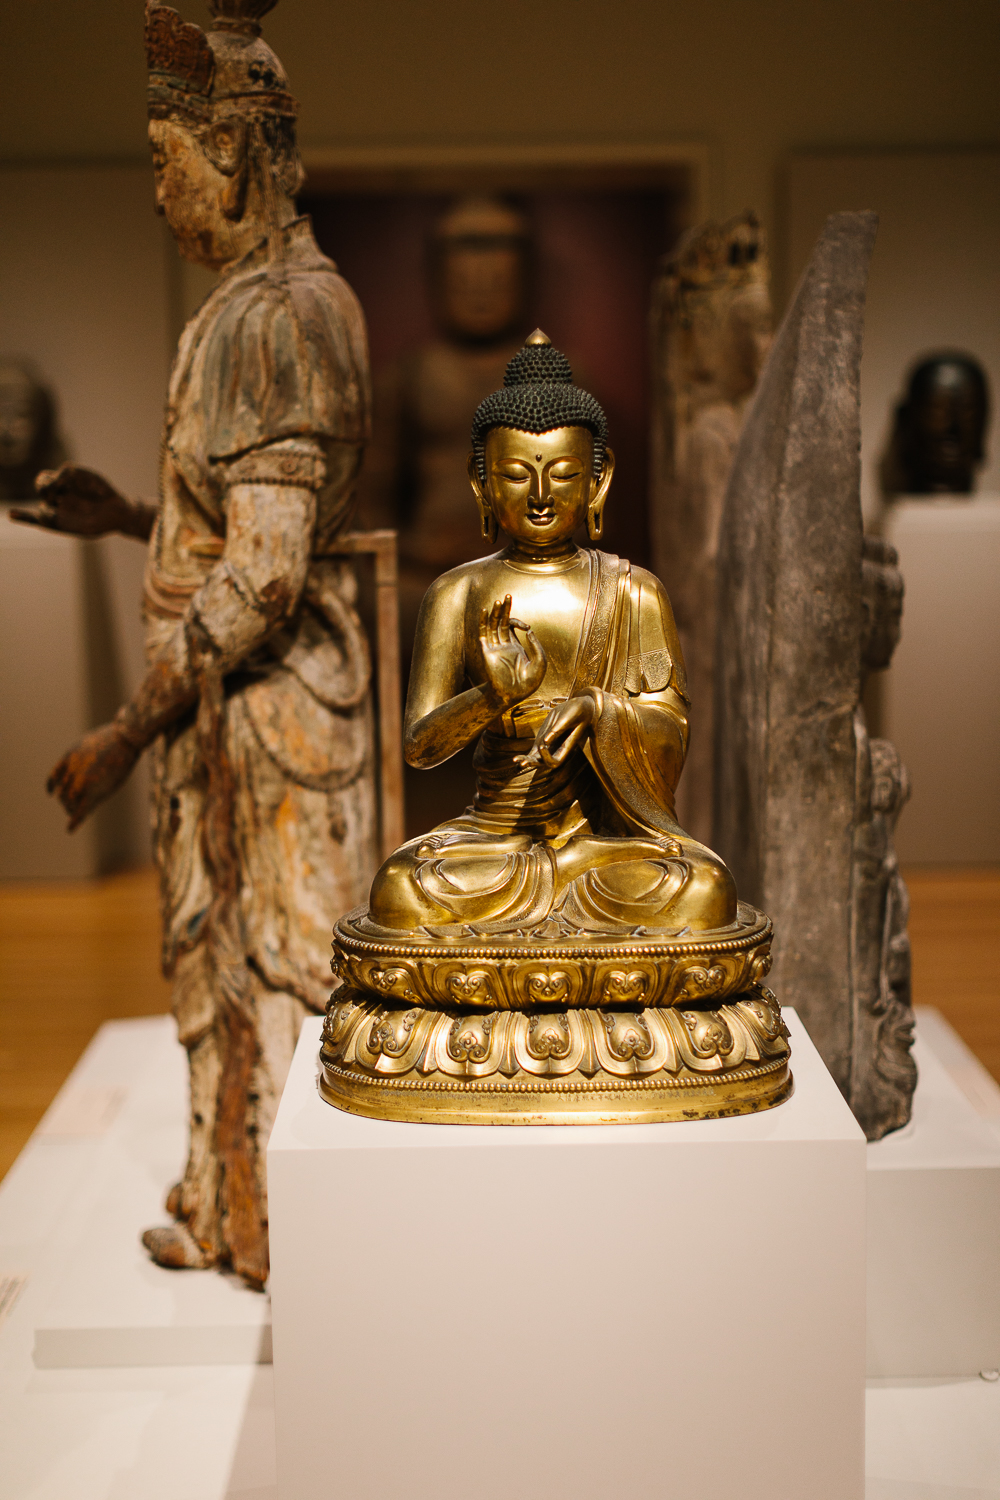 This Buddha at the RISD Museum calmed me immediately